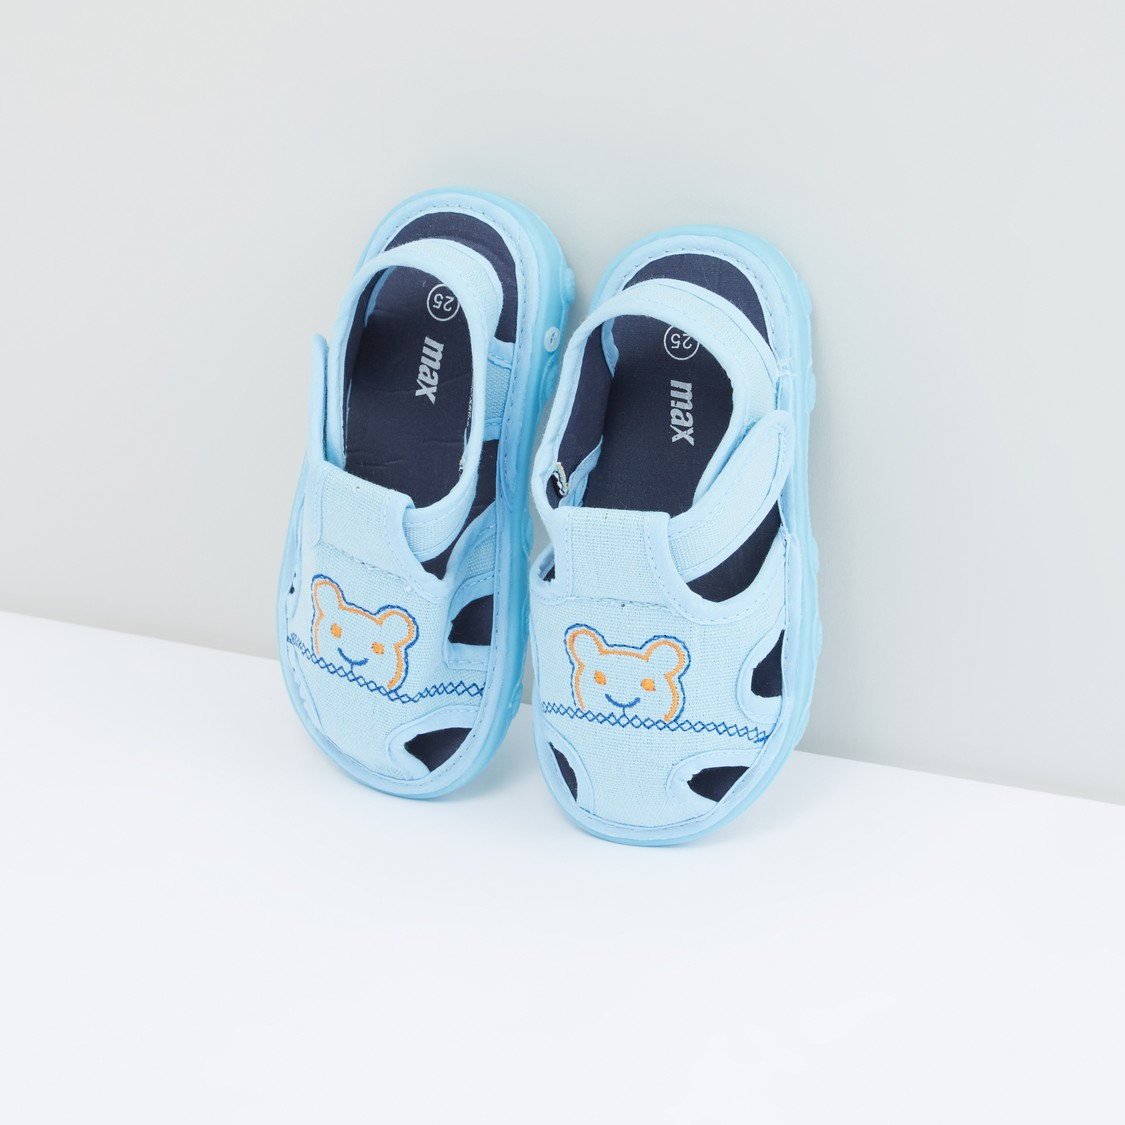 Embroidered Sandals with Hook and Loop Closure